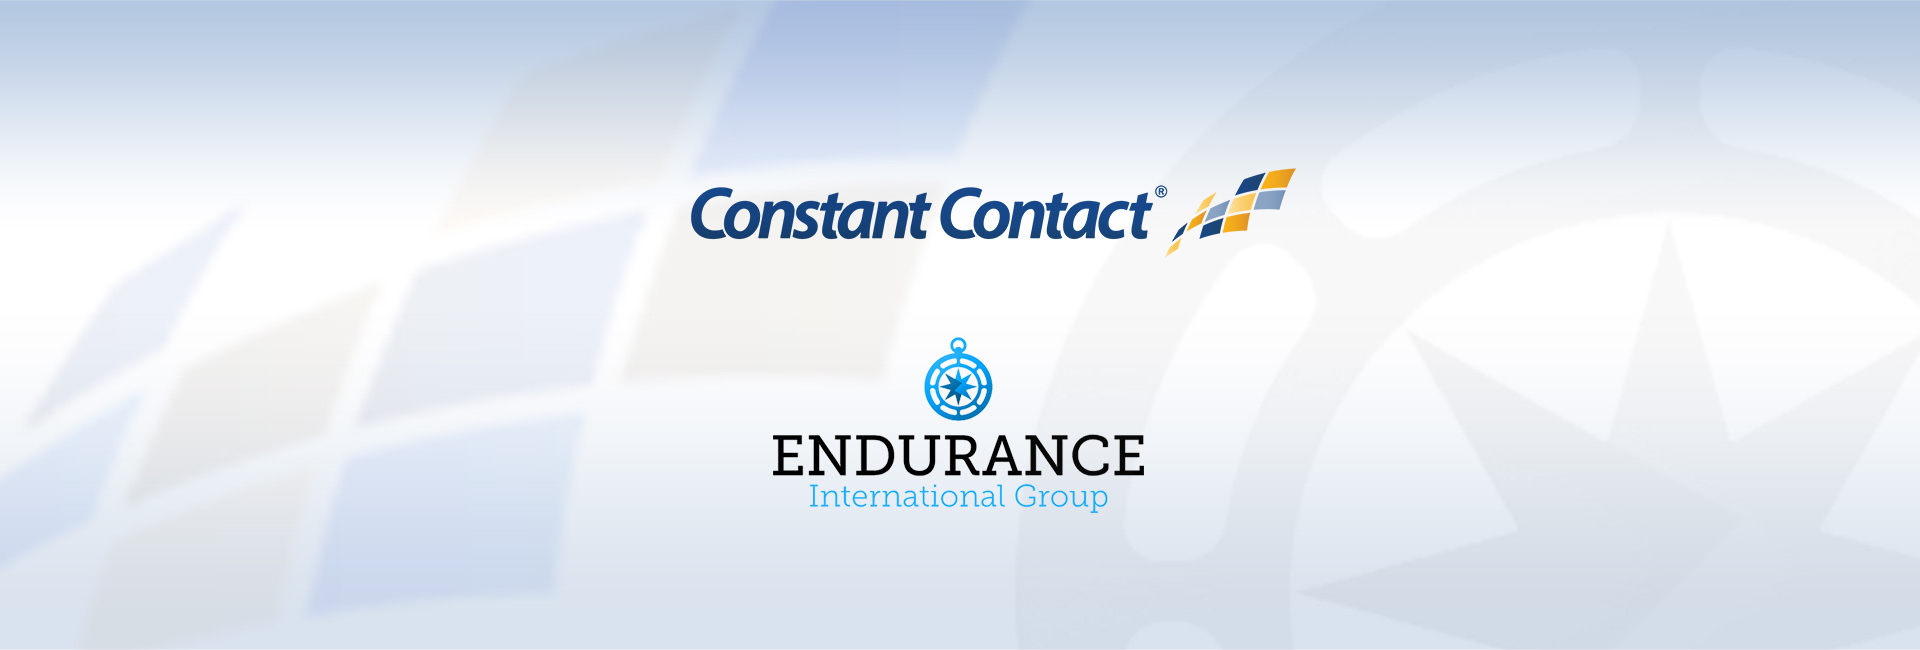 Constant Contact To Merge With Endurance International